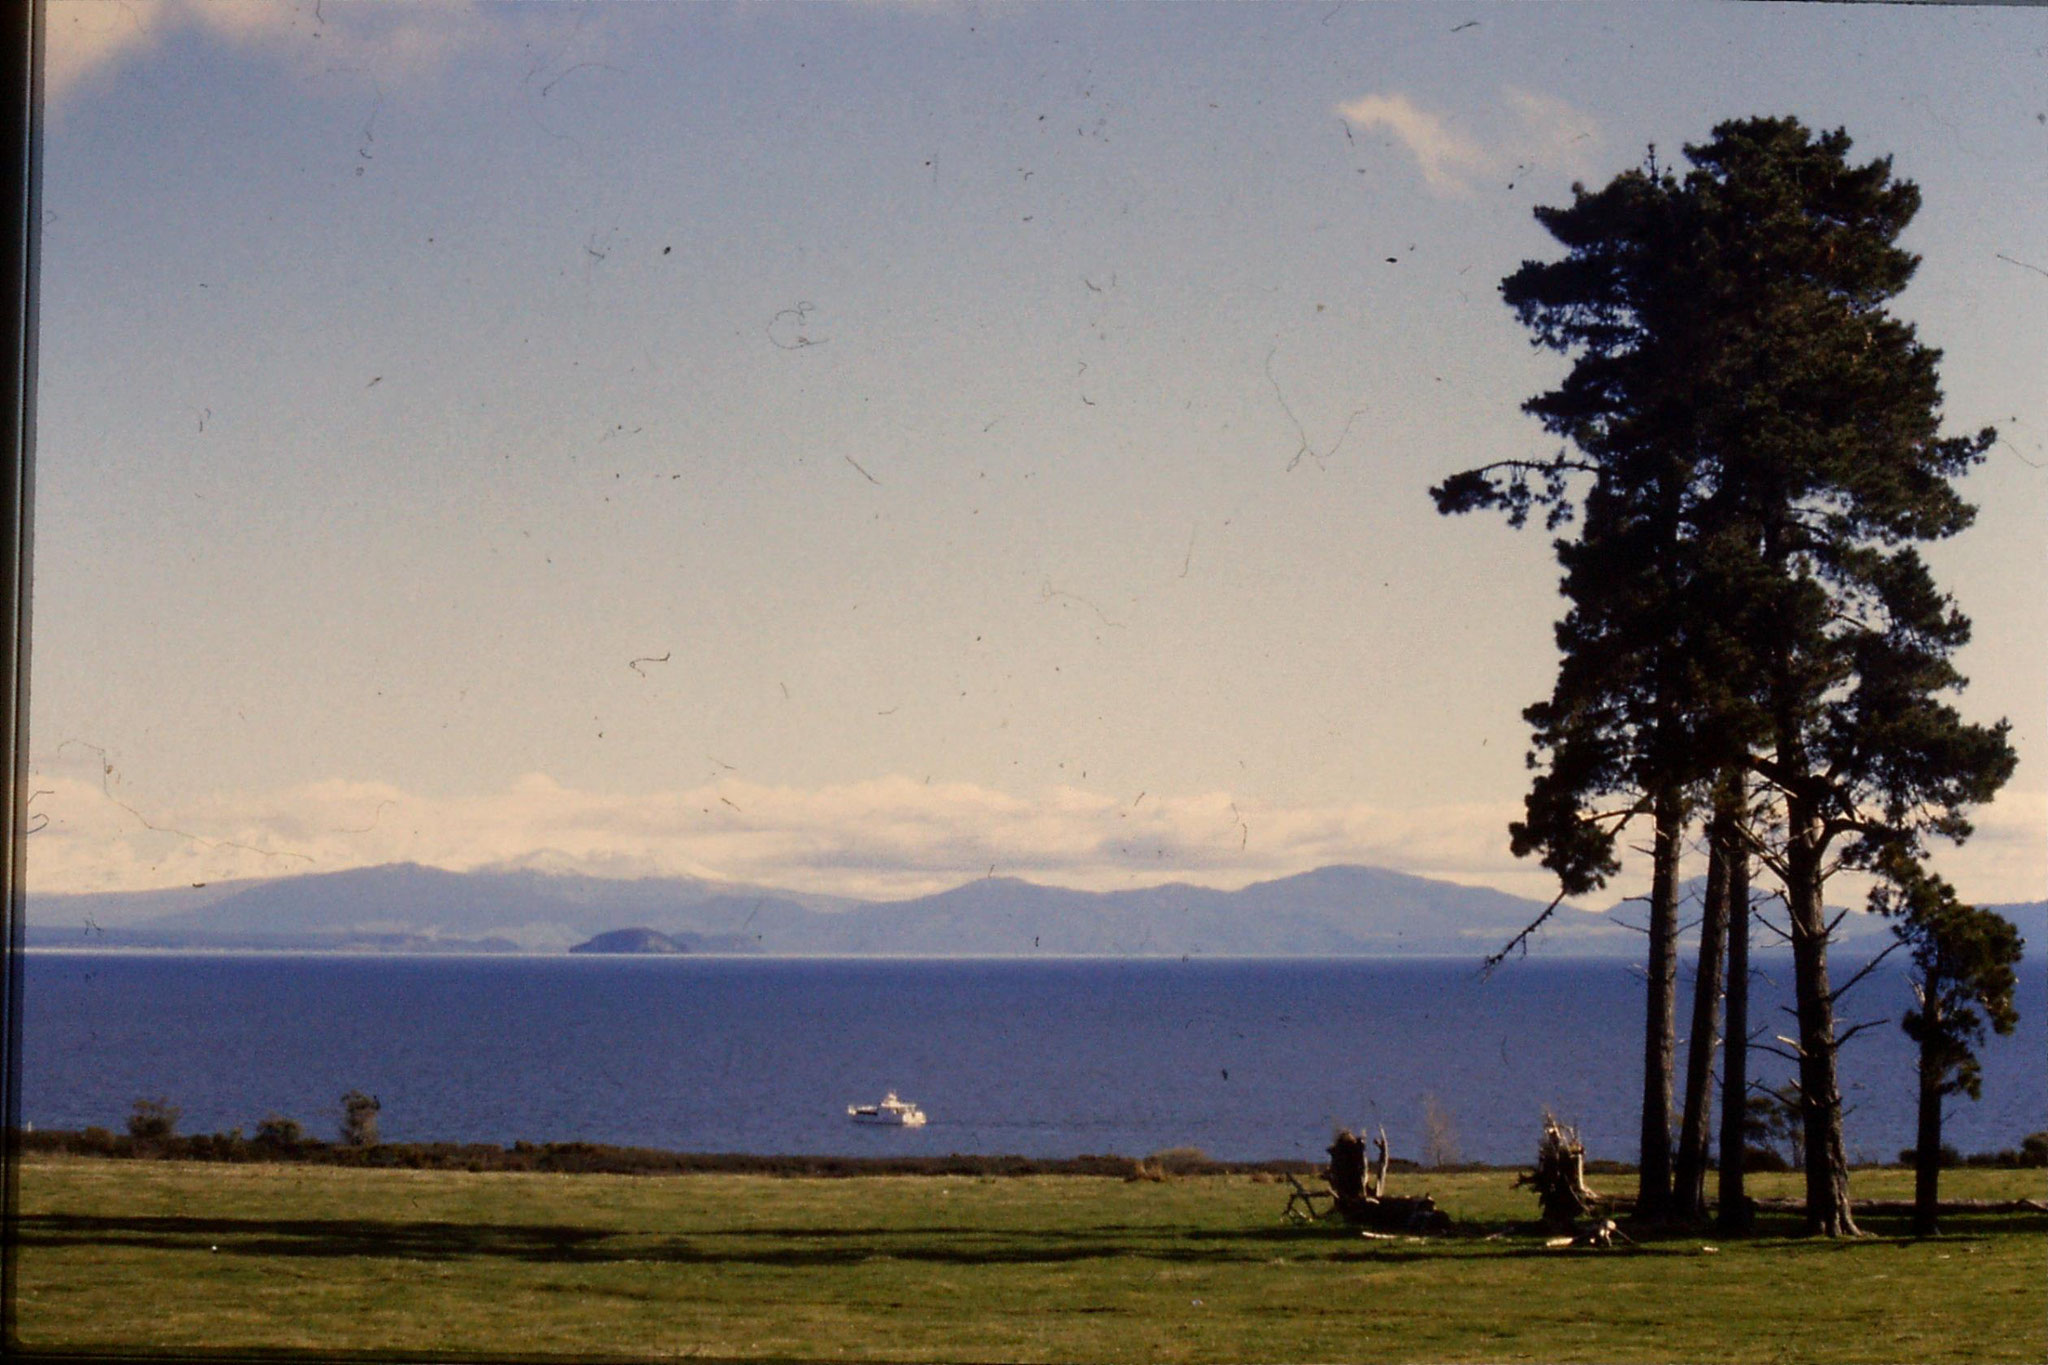 30/8/1990: 16: lake Taupo from Taupo